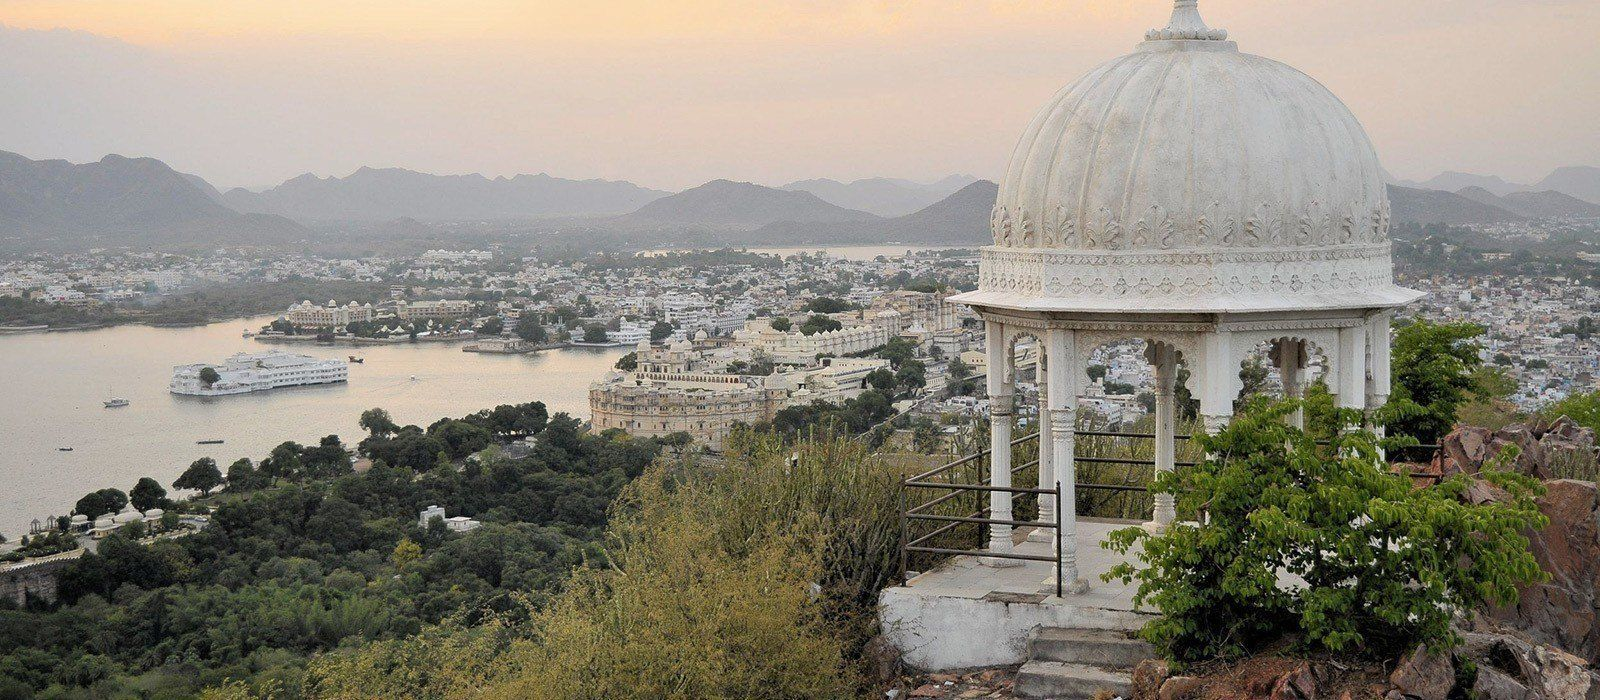 Rajasthan's Jewels & Secrets Tour Trip 4